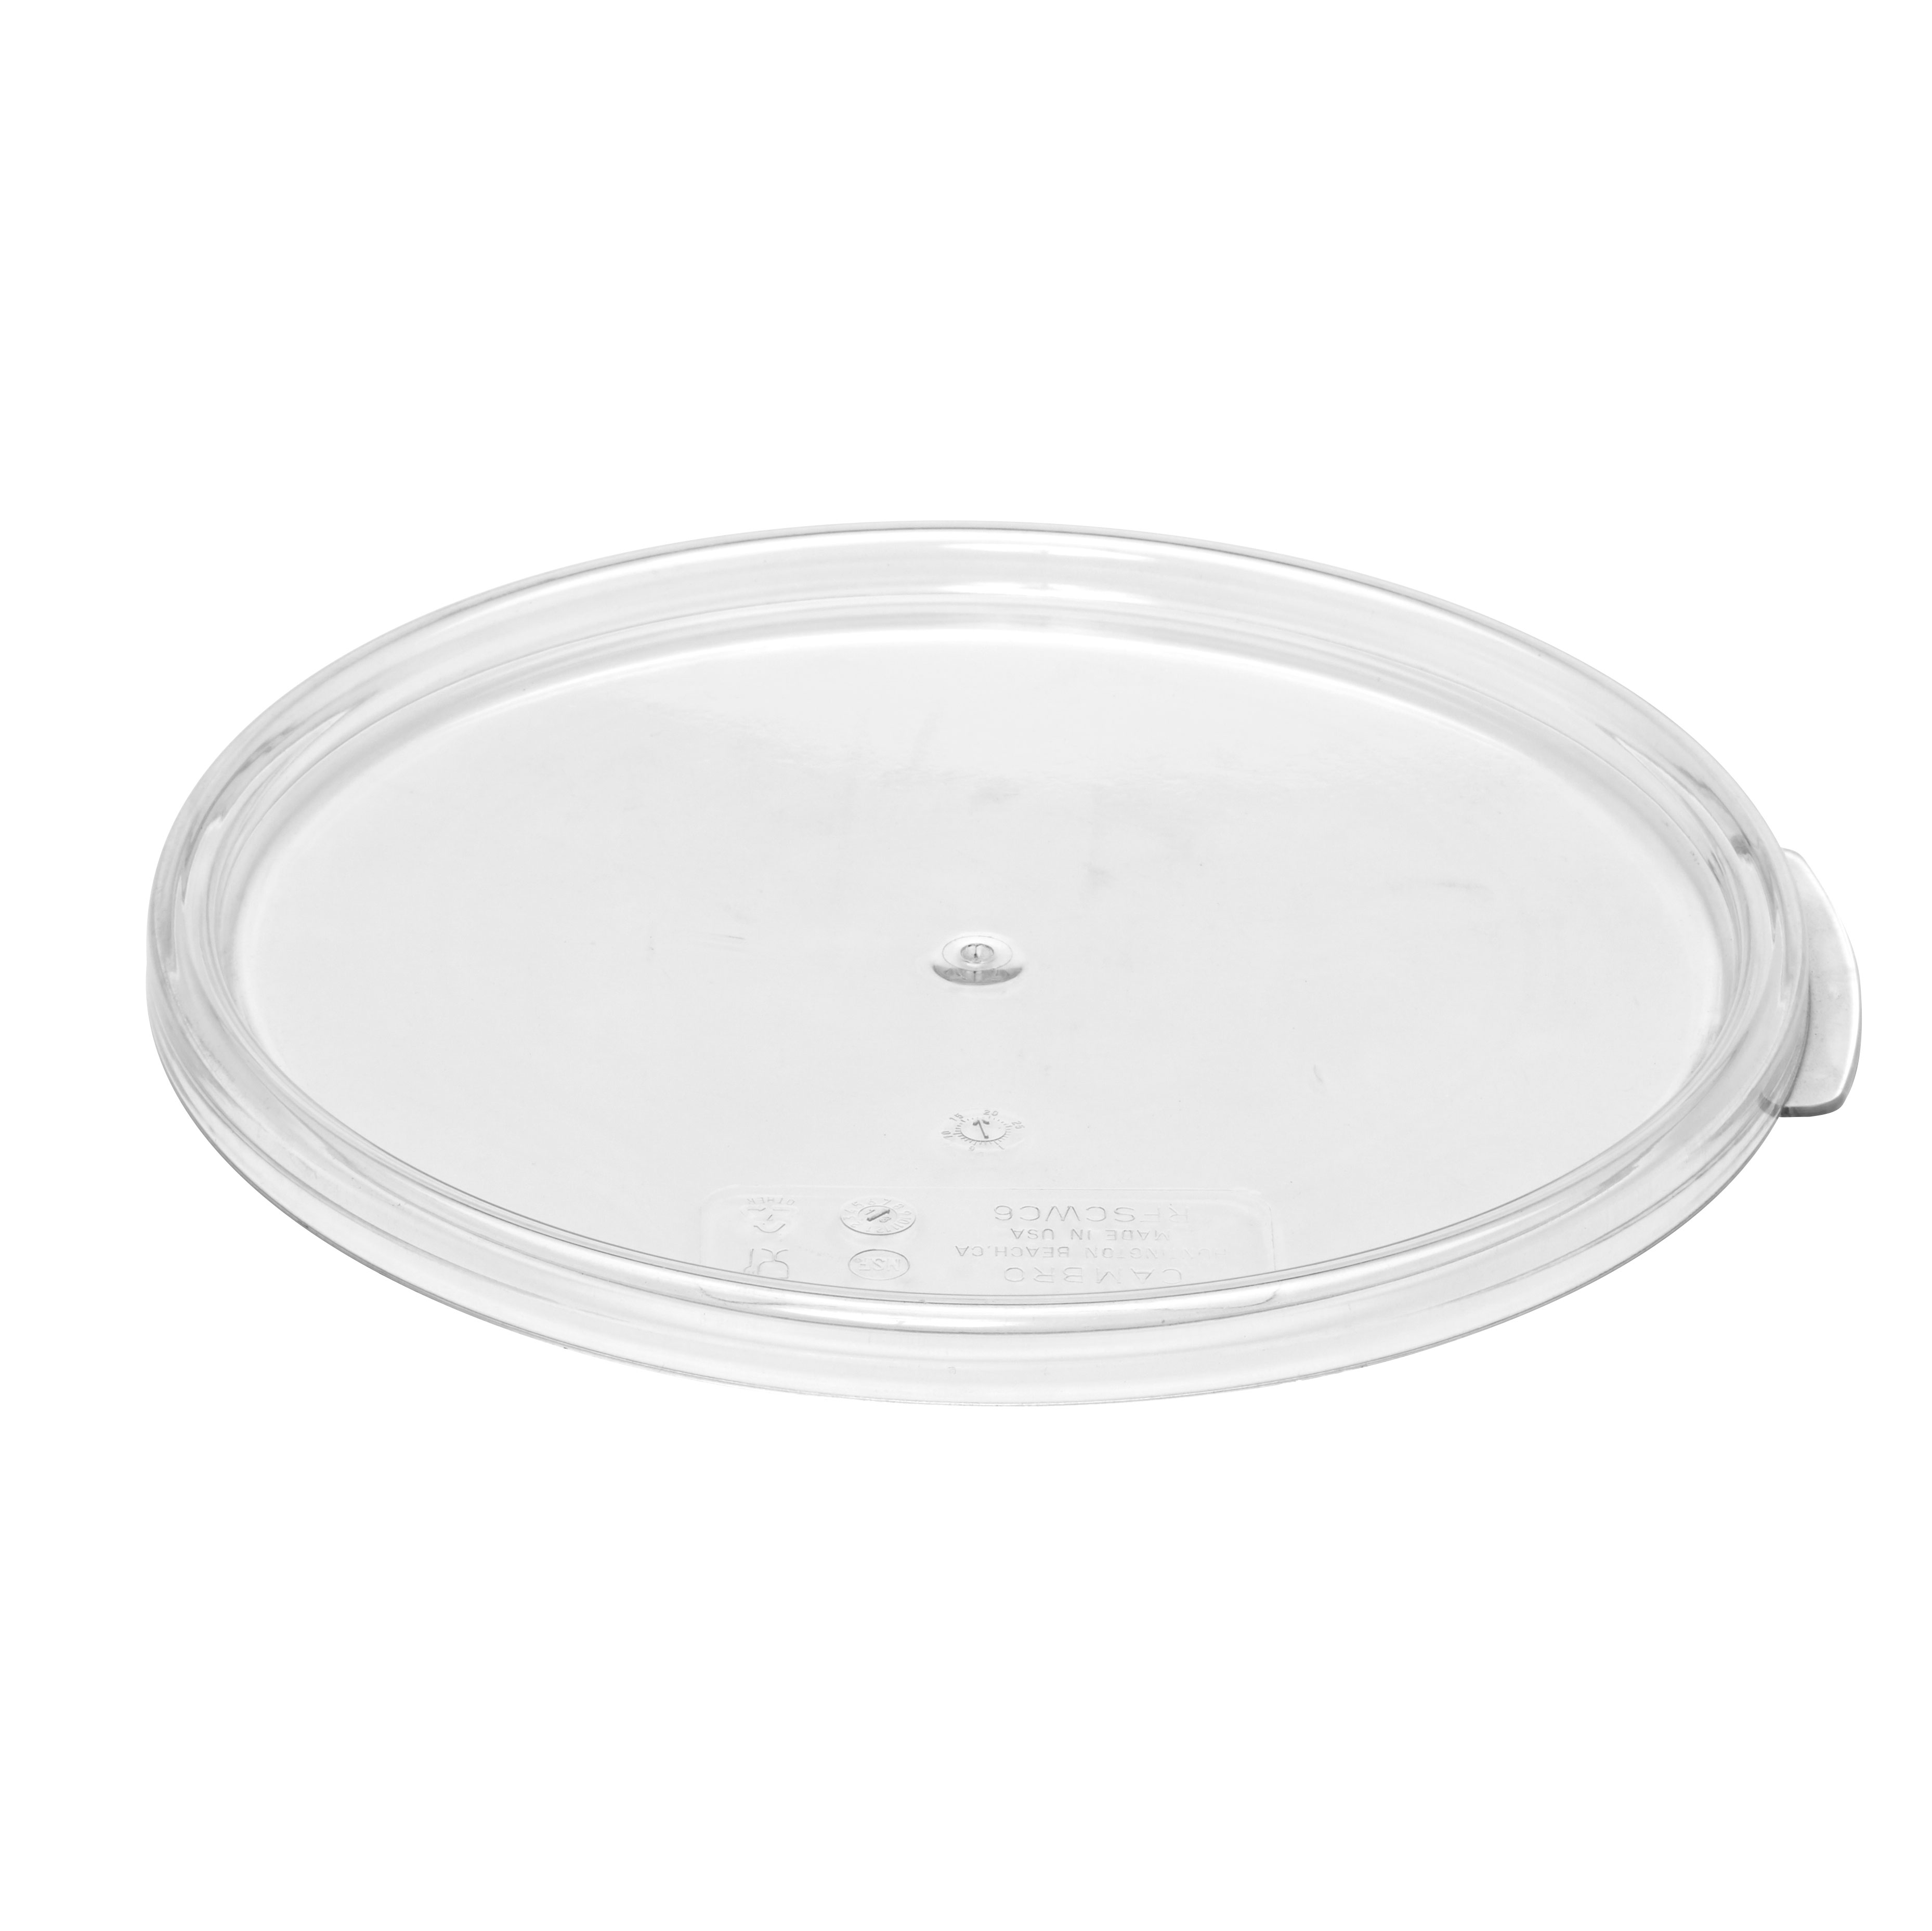 Cambro RFSCWC6135 food/beverage storage container